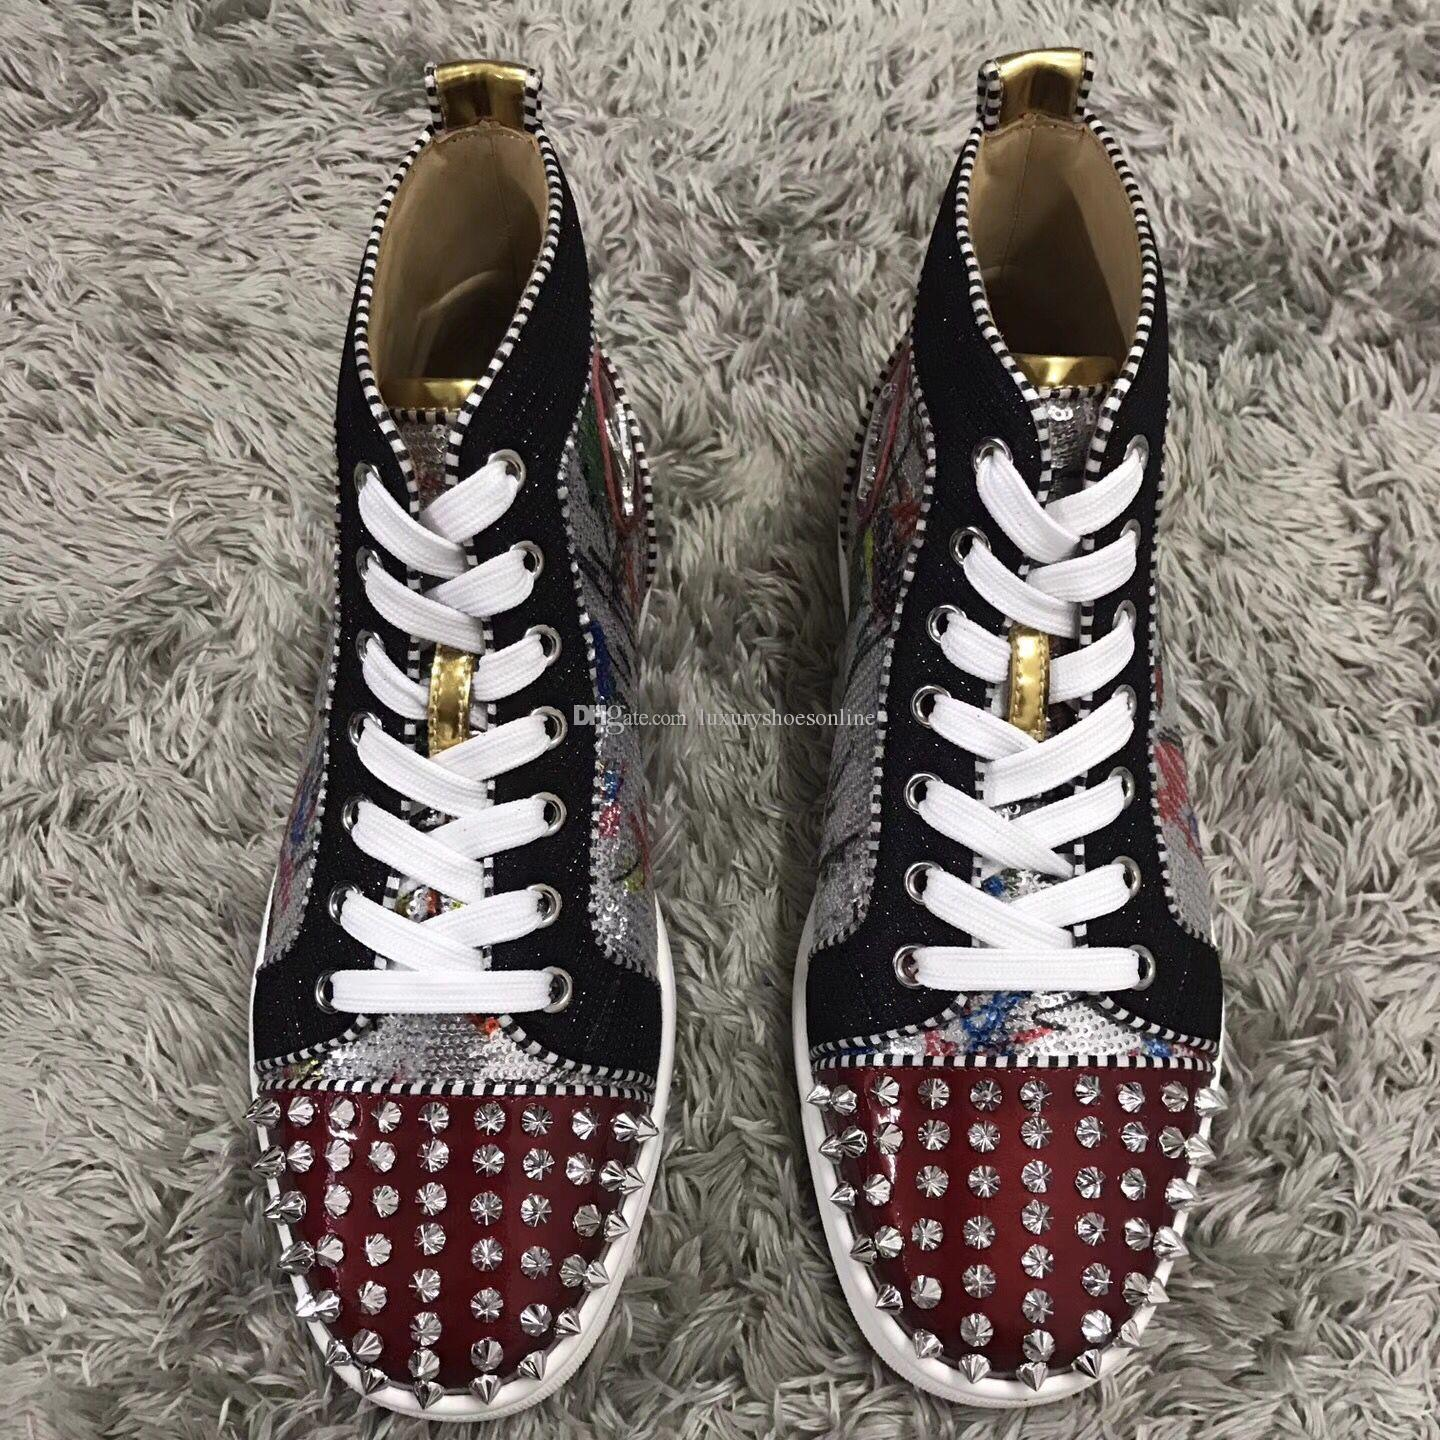 Elegant Bas Rouge Baskets Chaussures No Limit Plots et Strass Graffiti 2018 Nouveaux Baskets Amateurs Baskets Starstudded Casual